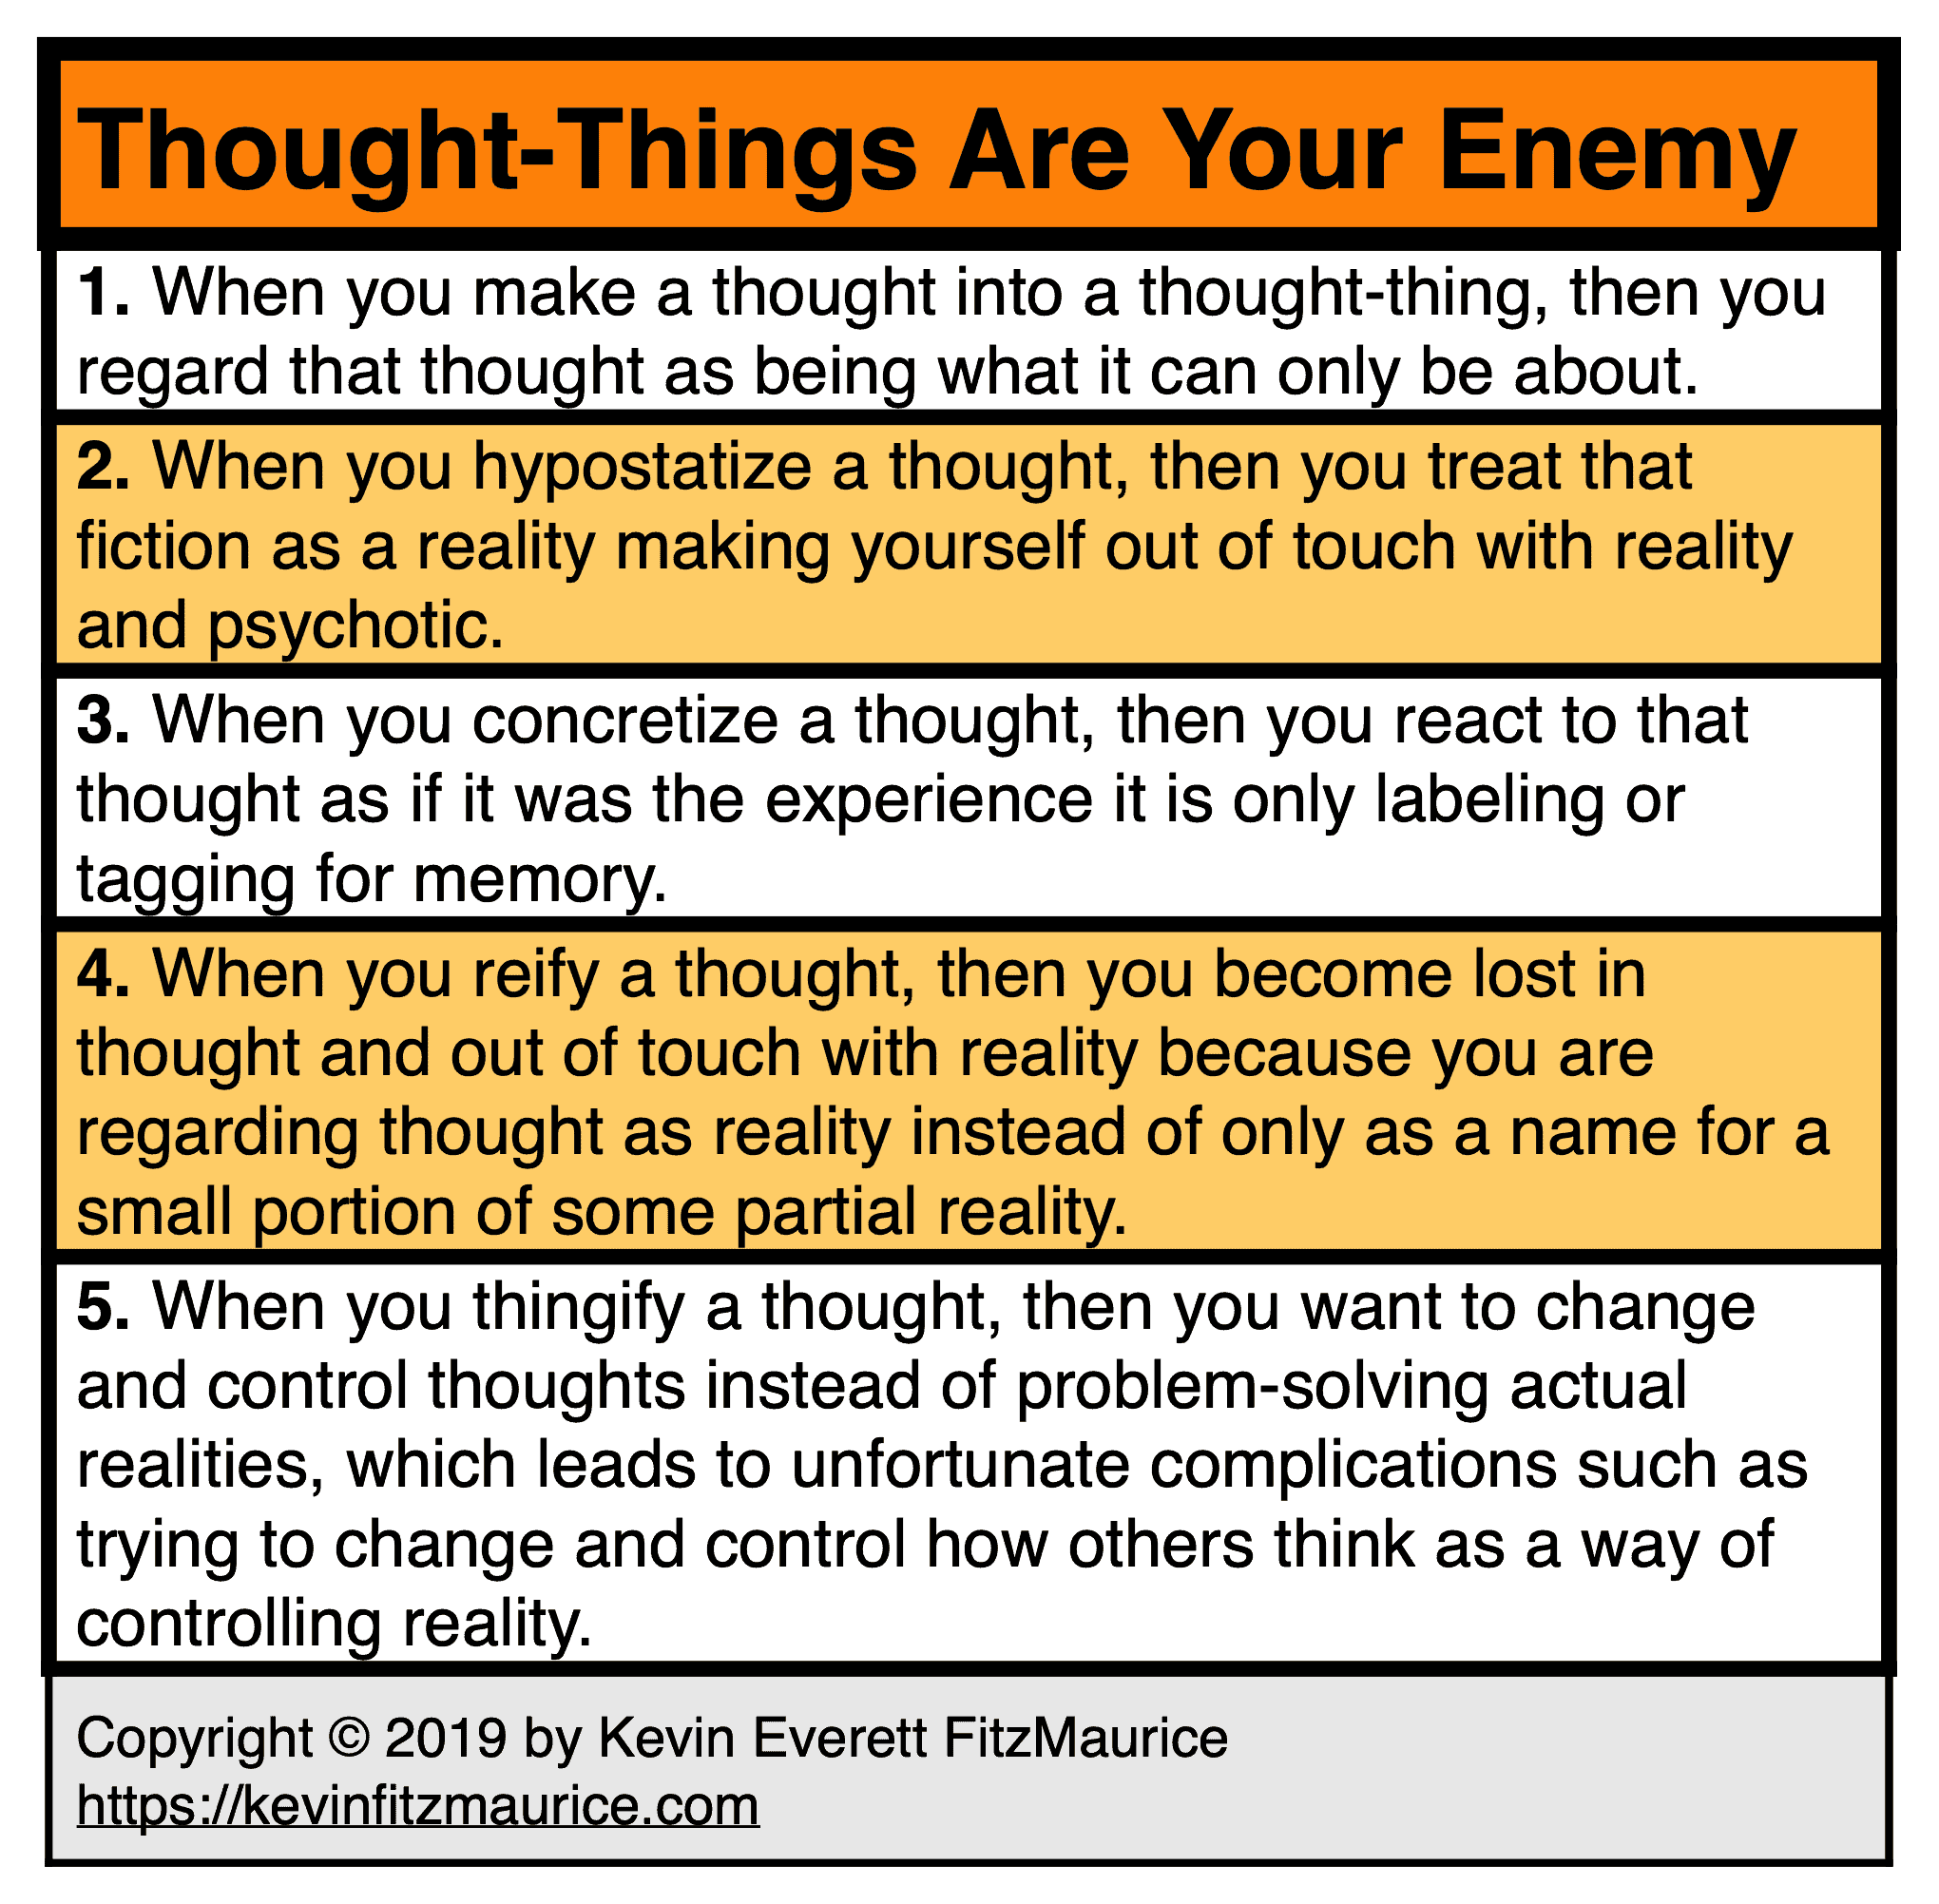 Thought-Things Are Your Enemy